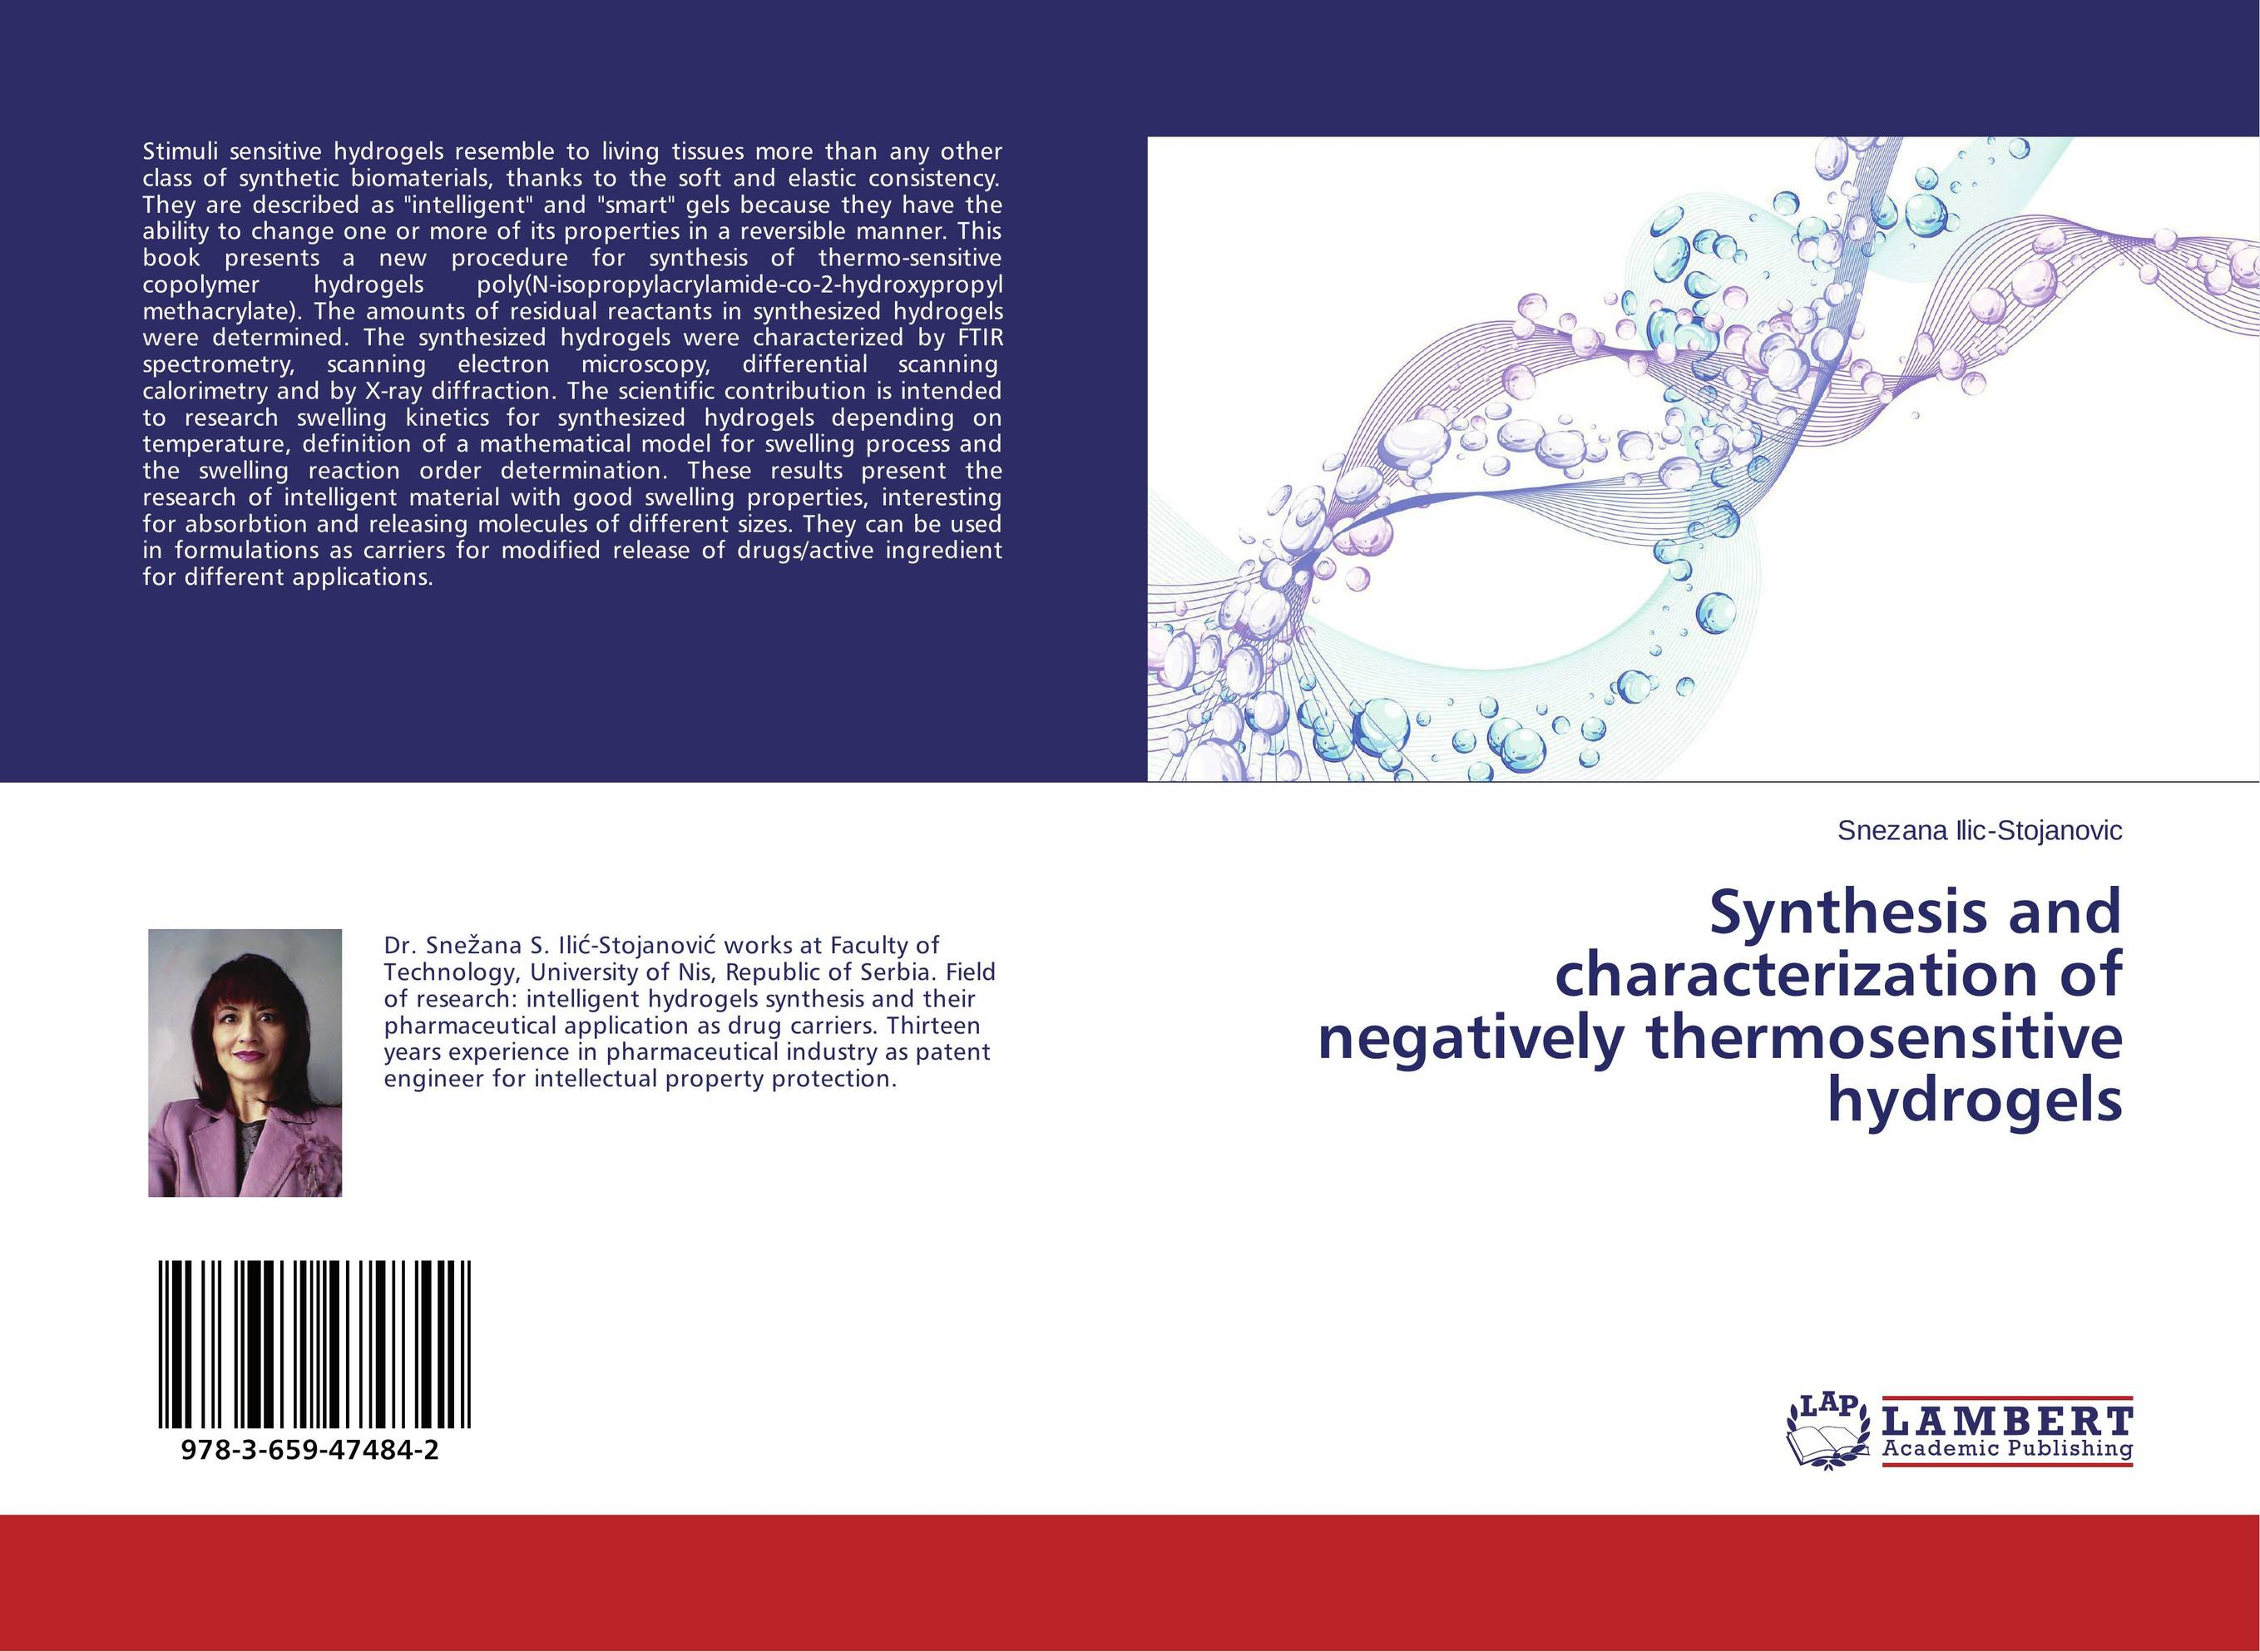 Synthesis and characterization of negatively thermosensitive hydrogels synthesis characterization and applications of nano cdha